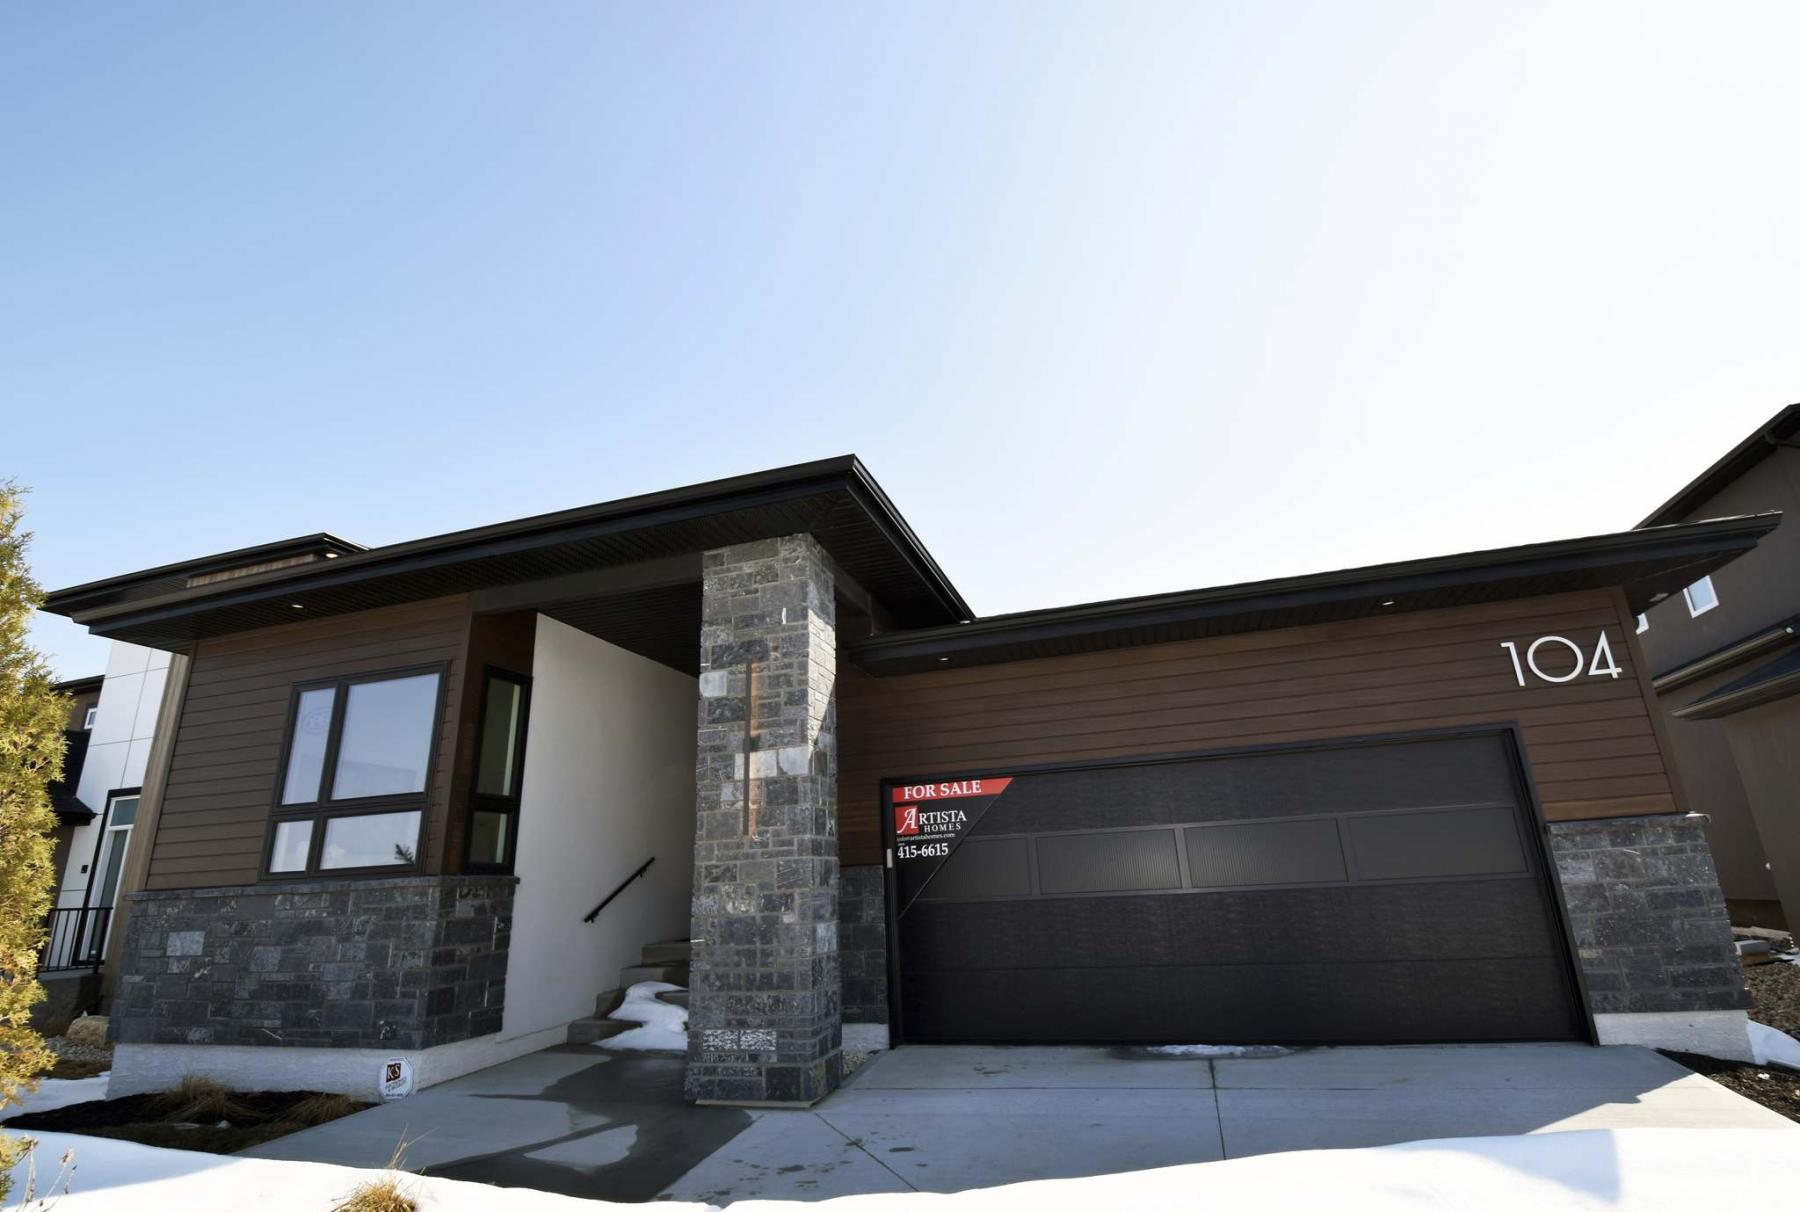 <p>Photos by Todd Lewys / Winnipeg Free Press</p><p>A simple, classy exterior is a prelude to this spacious bungalow's simple yet spectacular interior.</p>